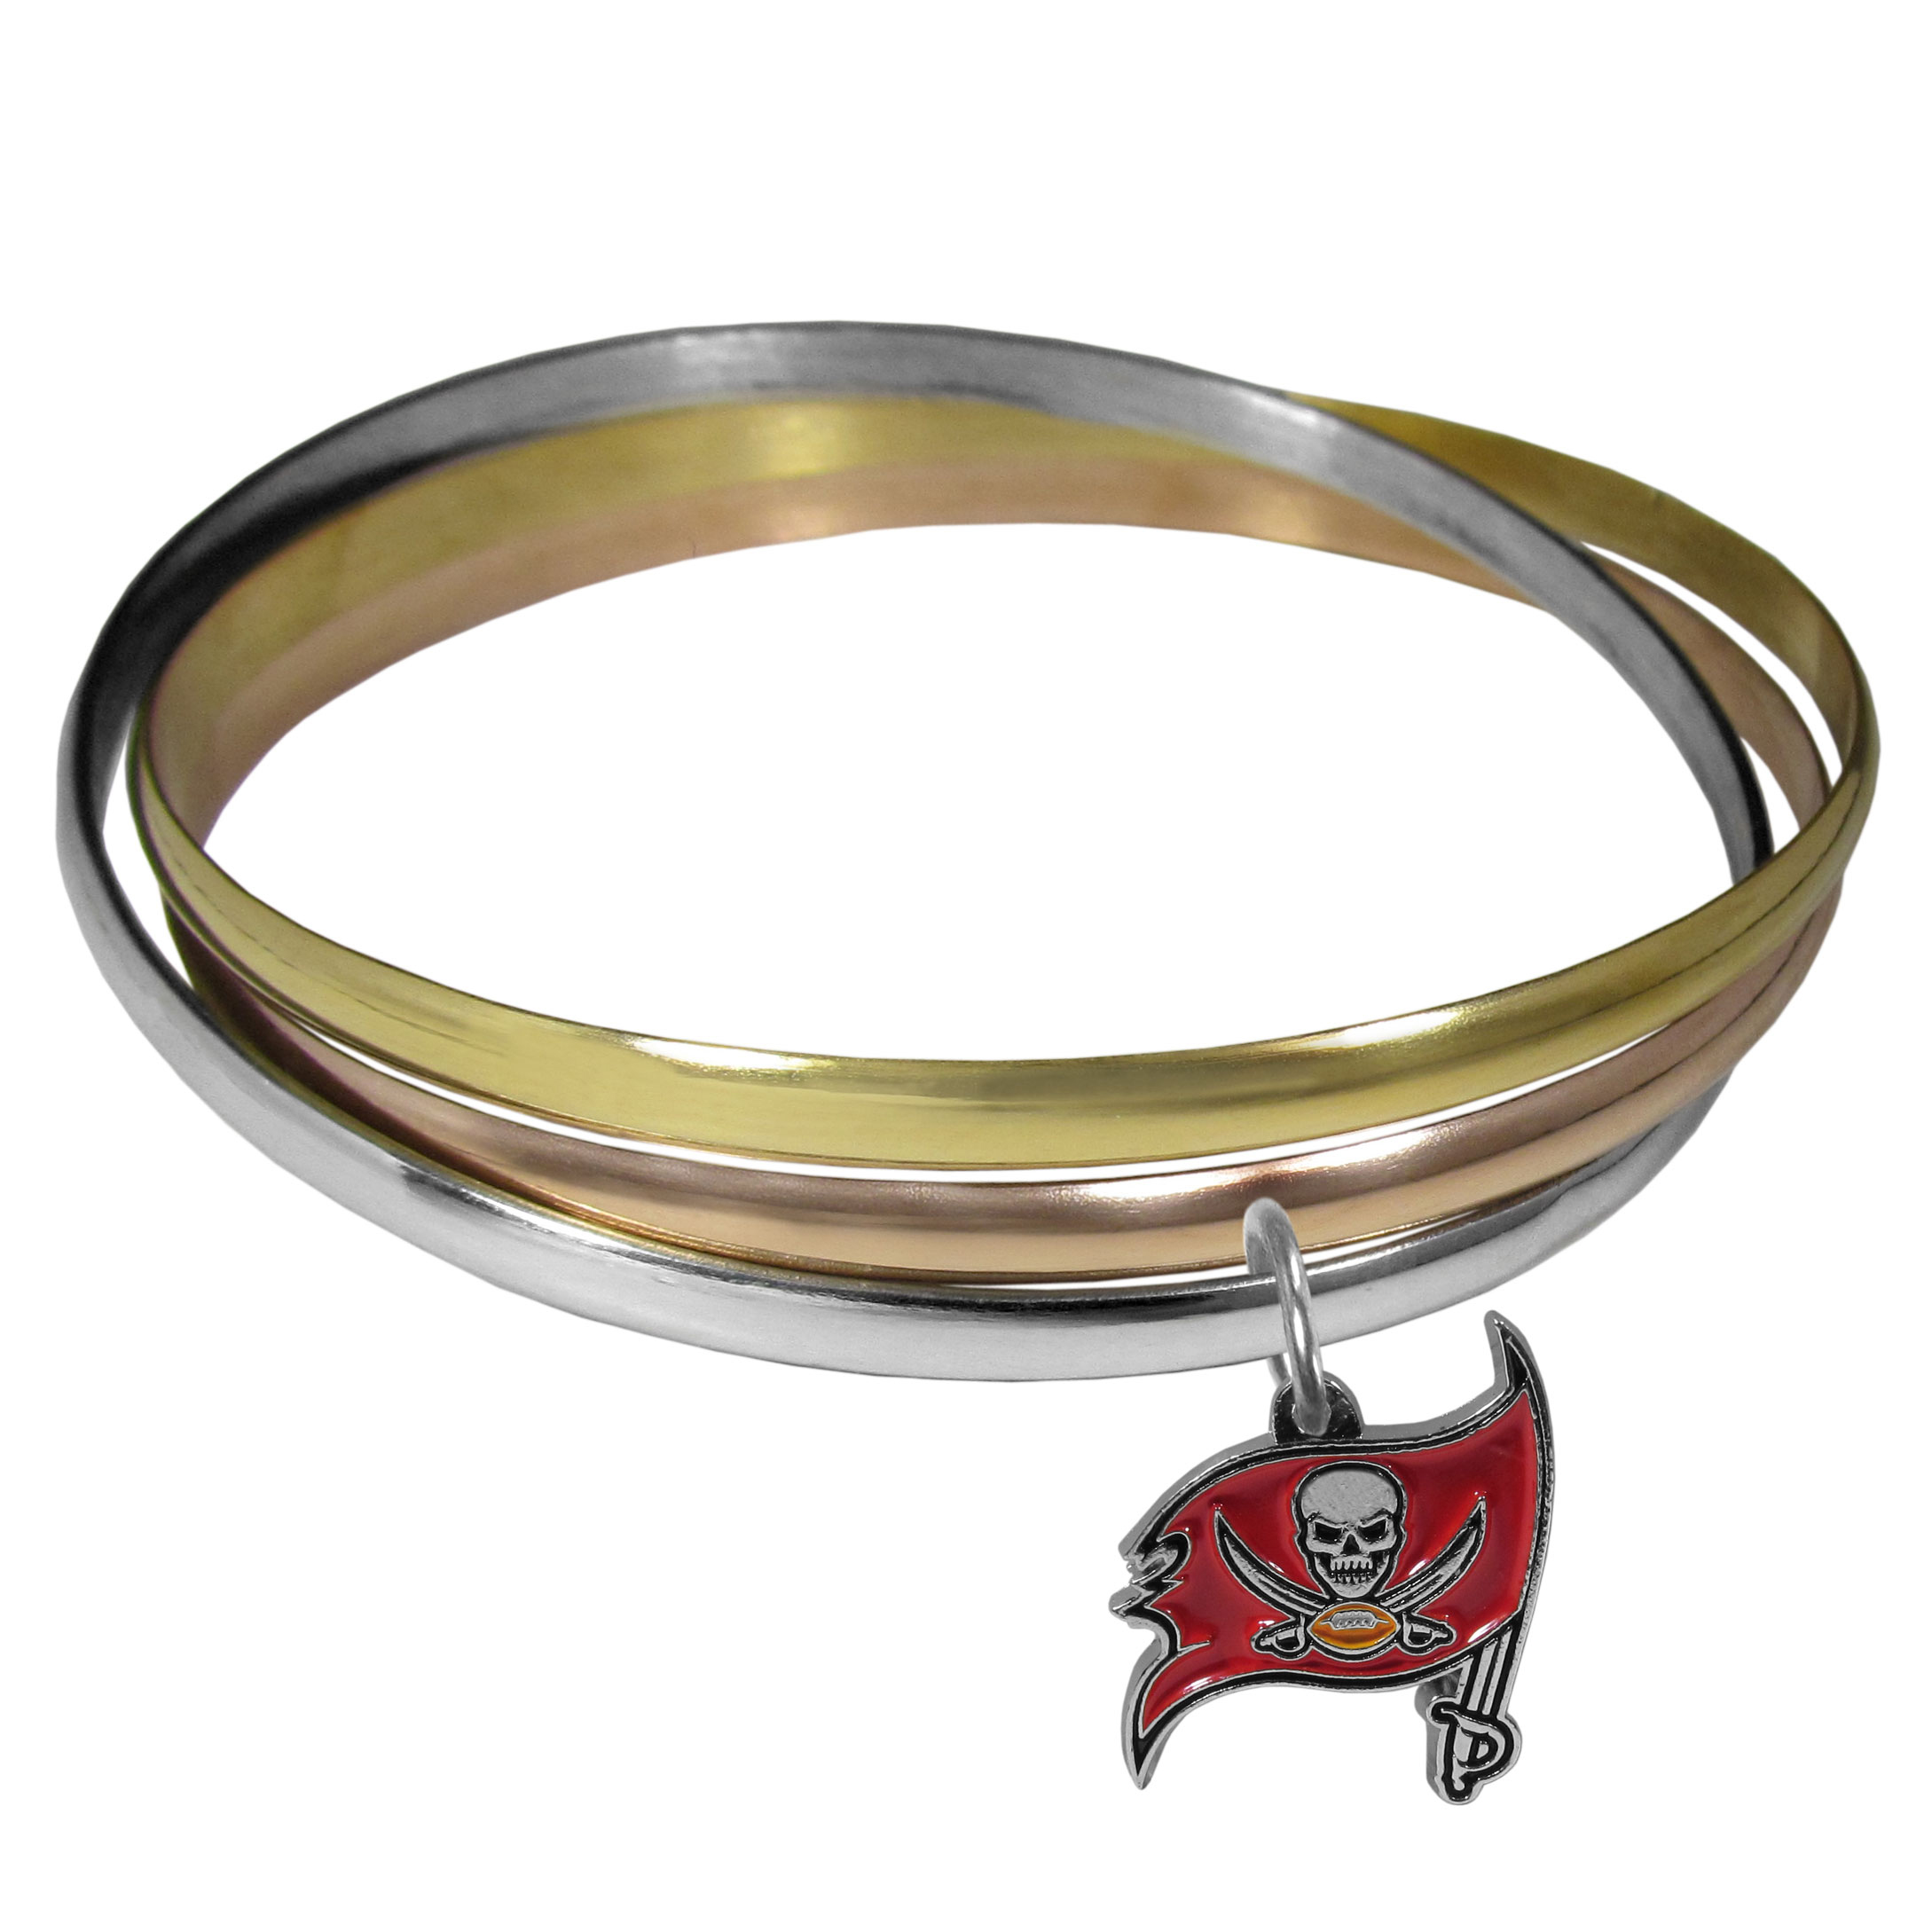 Tampa Bay Buccaneers Tri-color Bangle Bracelet - These beautiful bangles come in a interlocking style and feature a fully cast Tampa Bay Buccaneers charm with enameled team colors. The bracelet has a silver toned bangle, gold tone bangle and brass toned bangle.